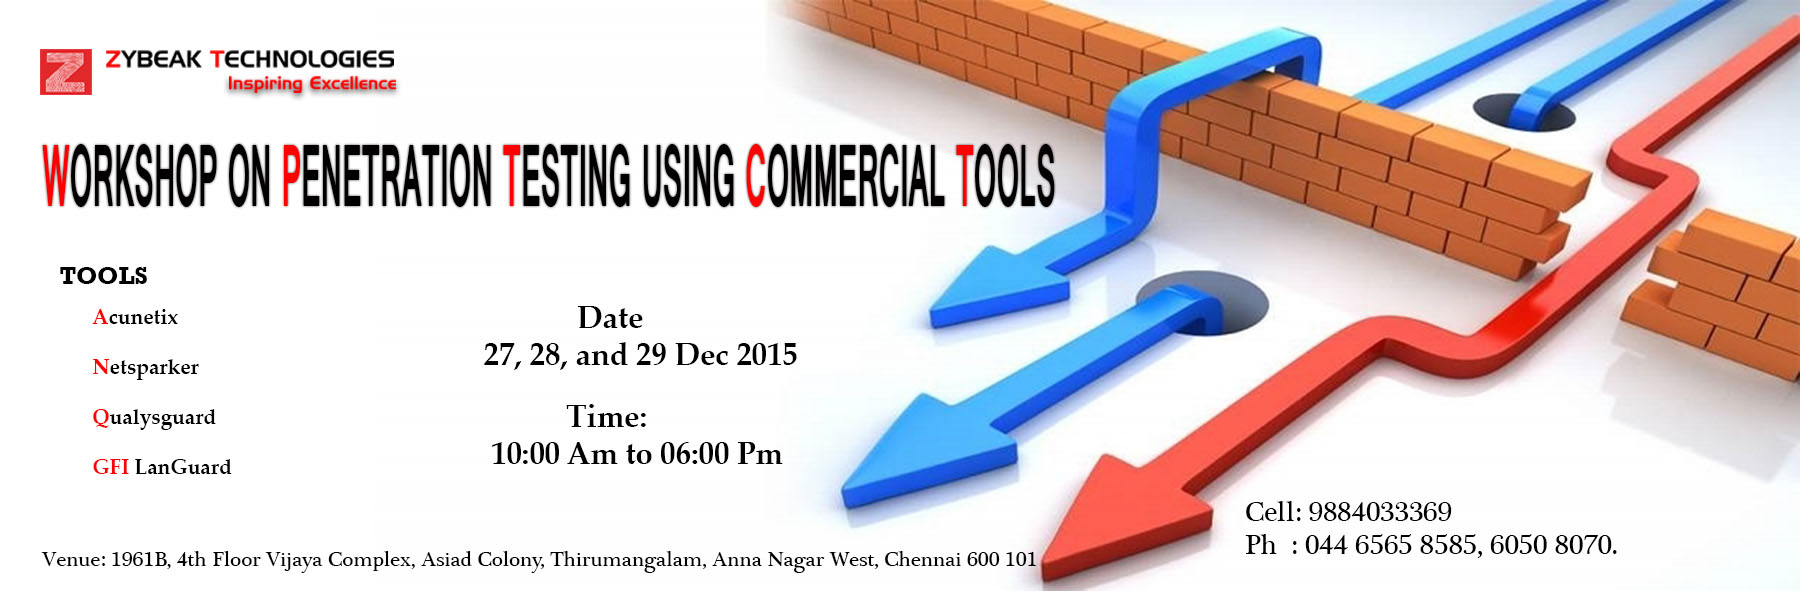 WORKSHOP ON PENETRATION TESTING USING COMMERCIAL TOOLS